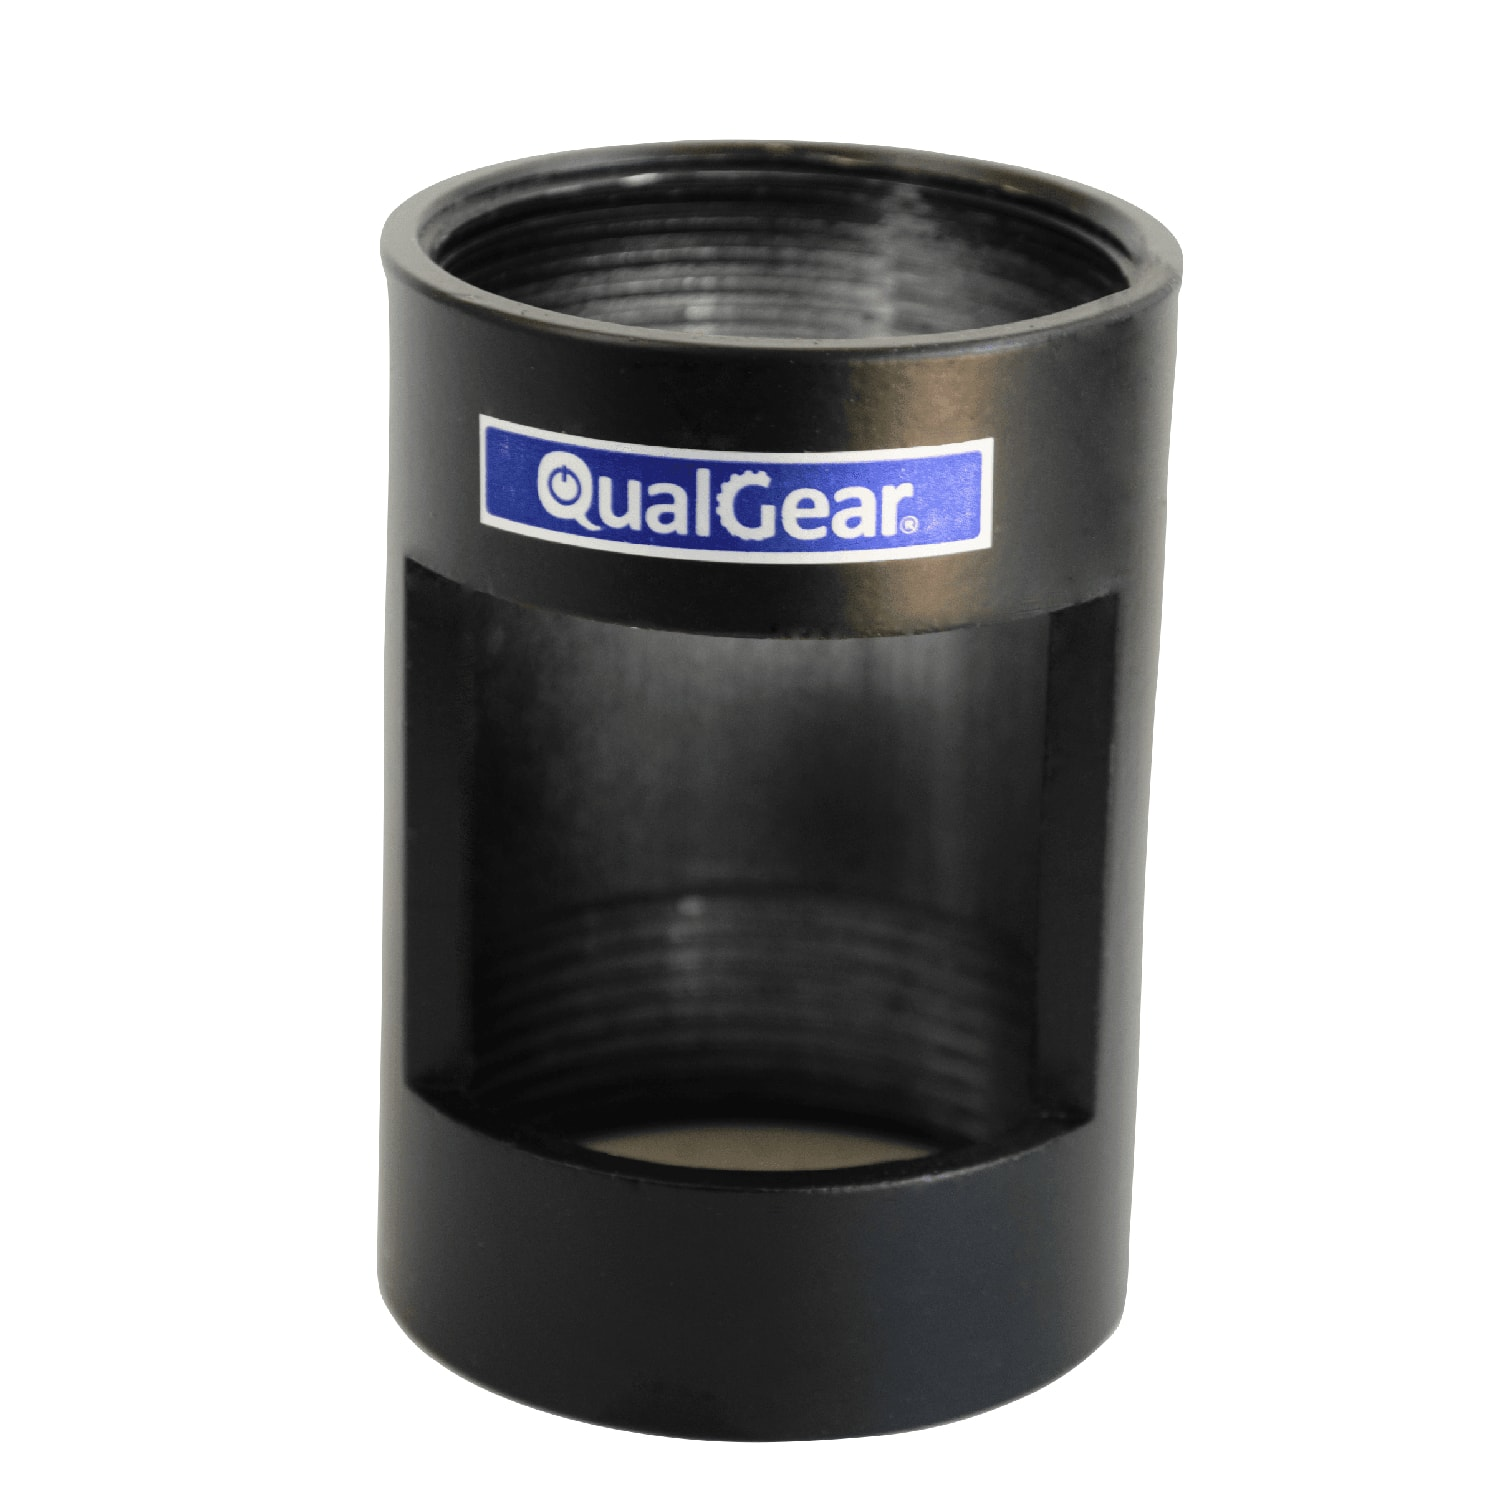 QualGear®  QG-PRO-PM-PCO-B Pro-AV 1.5 Inch  Npt Threaded Pipe Connector with Opening Projector Accessory